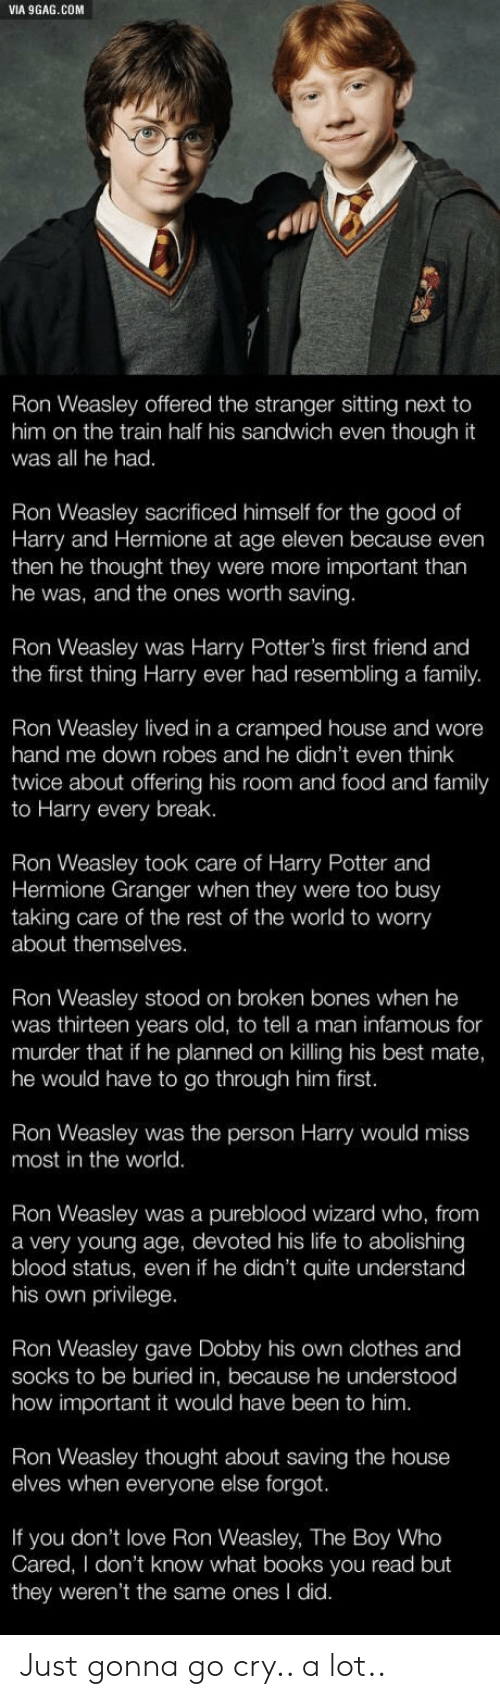 Broken Bones: VIA 9GAG.COM  Ron Weasley offered the stranger sitting next to  him on the train half his sandwich even though it  was all he had.  Ron Weasley sacrificed himself for the good of  Harry and Hermione at age eleven because even  then he thought they were more important tharn  he was, and the ones worth saving.  Ron Weasley was Harry Potter's first friend and  the first thing Harry ever had resembling a family.  Weasley lived in a cramped house and wore  hand me down robes and he didn't even think  twice about offering his room and food and family  to Harry every break.  Ron Weasley took care of Harry Potter and  Hermione Granger when they were too busy  taking care of the rest of the world to worry  about themselves.  Ron Weasley stood on broken bones when he  was thirteen years old, to tell a man infamous for  murder that if he planned on killing his best mate,  he would have to go through him first.  Ron Weasley was the person Harry would miss  most in the world.  Ron Weasley was a pureblood wizard who, from  a very young age, devoted his life to abolishing  blood status, even if he didn't quite understand  his own privilege.  Ron Weasley gave Dobby his own clothes and  socks to be buried in, because he understood  how important it would have been to him  Ron Weasley thought about saving the house  elves when everyone else forgot.  If you don't love Ron Weasley, The Boy Who  Cared, I don't know what books you read but  they weren't the same ones I did. Just gonna go cry.. a lot..